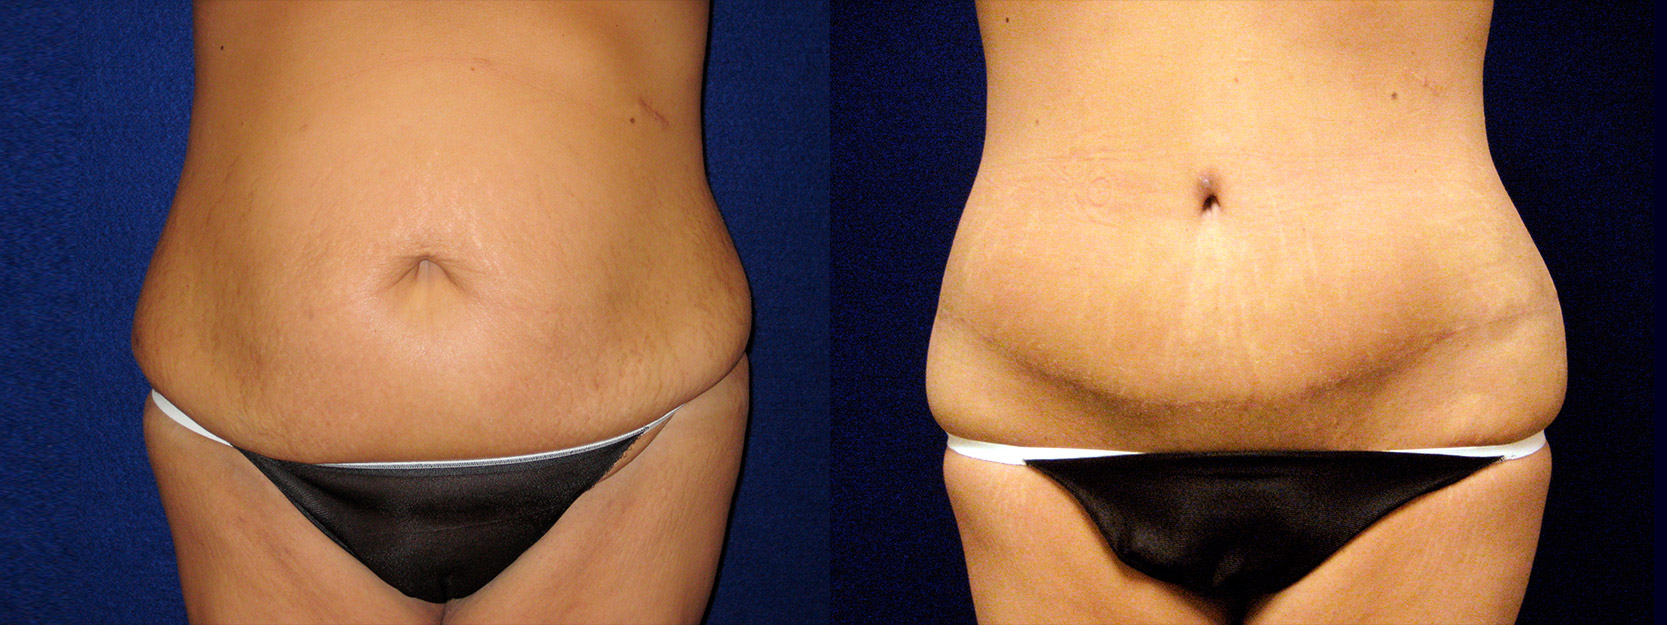 Frontal View - Circumferential Abdominoplasty After Massive Weight Loss